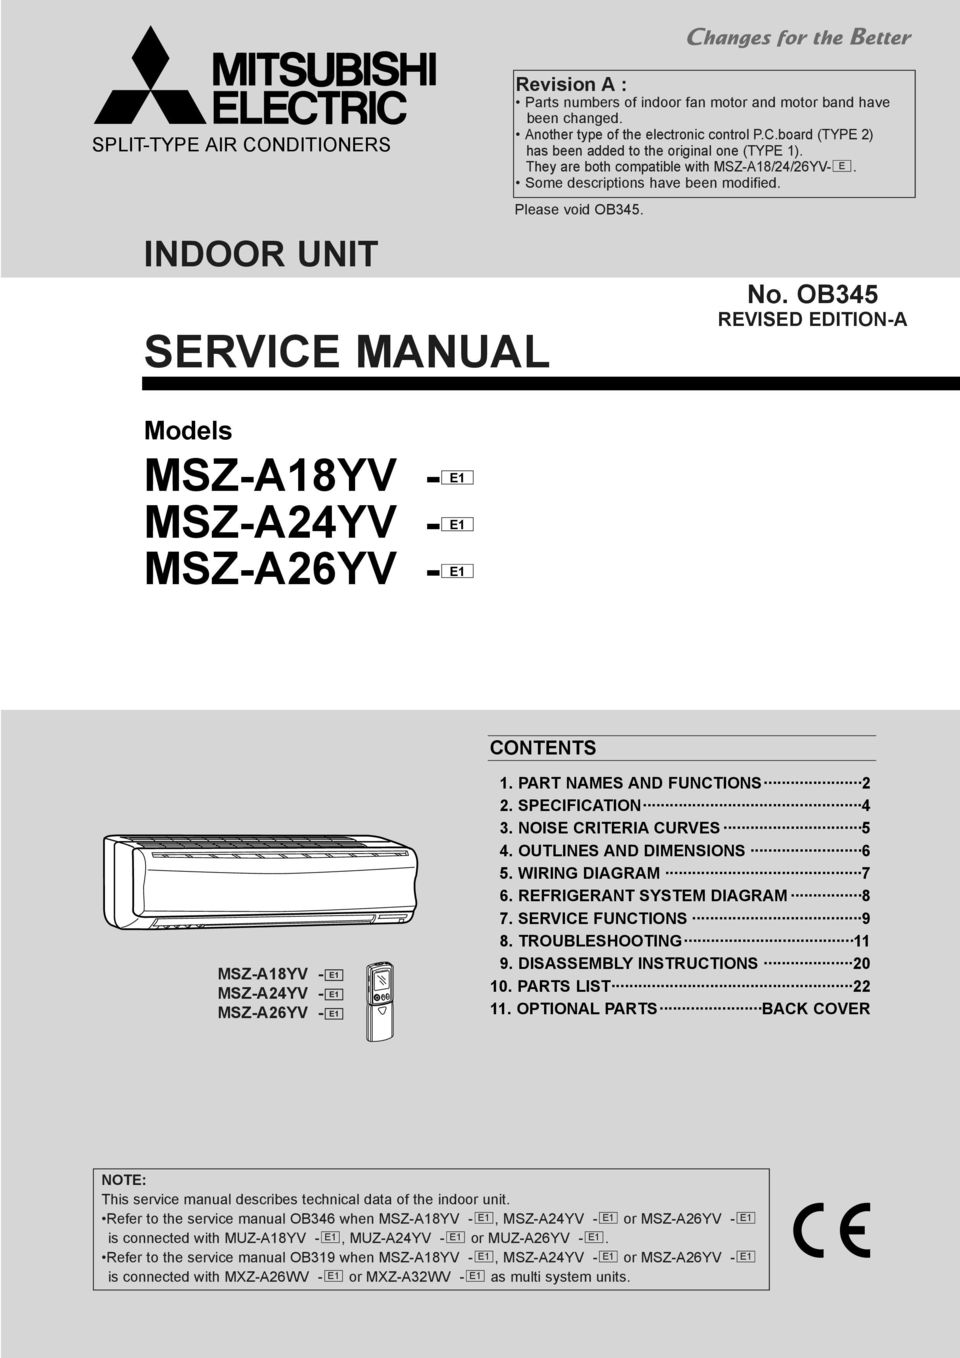 service manual msz a18yv e1 msz a24yv msz a24yv e1 indoor unit rh docplayer net